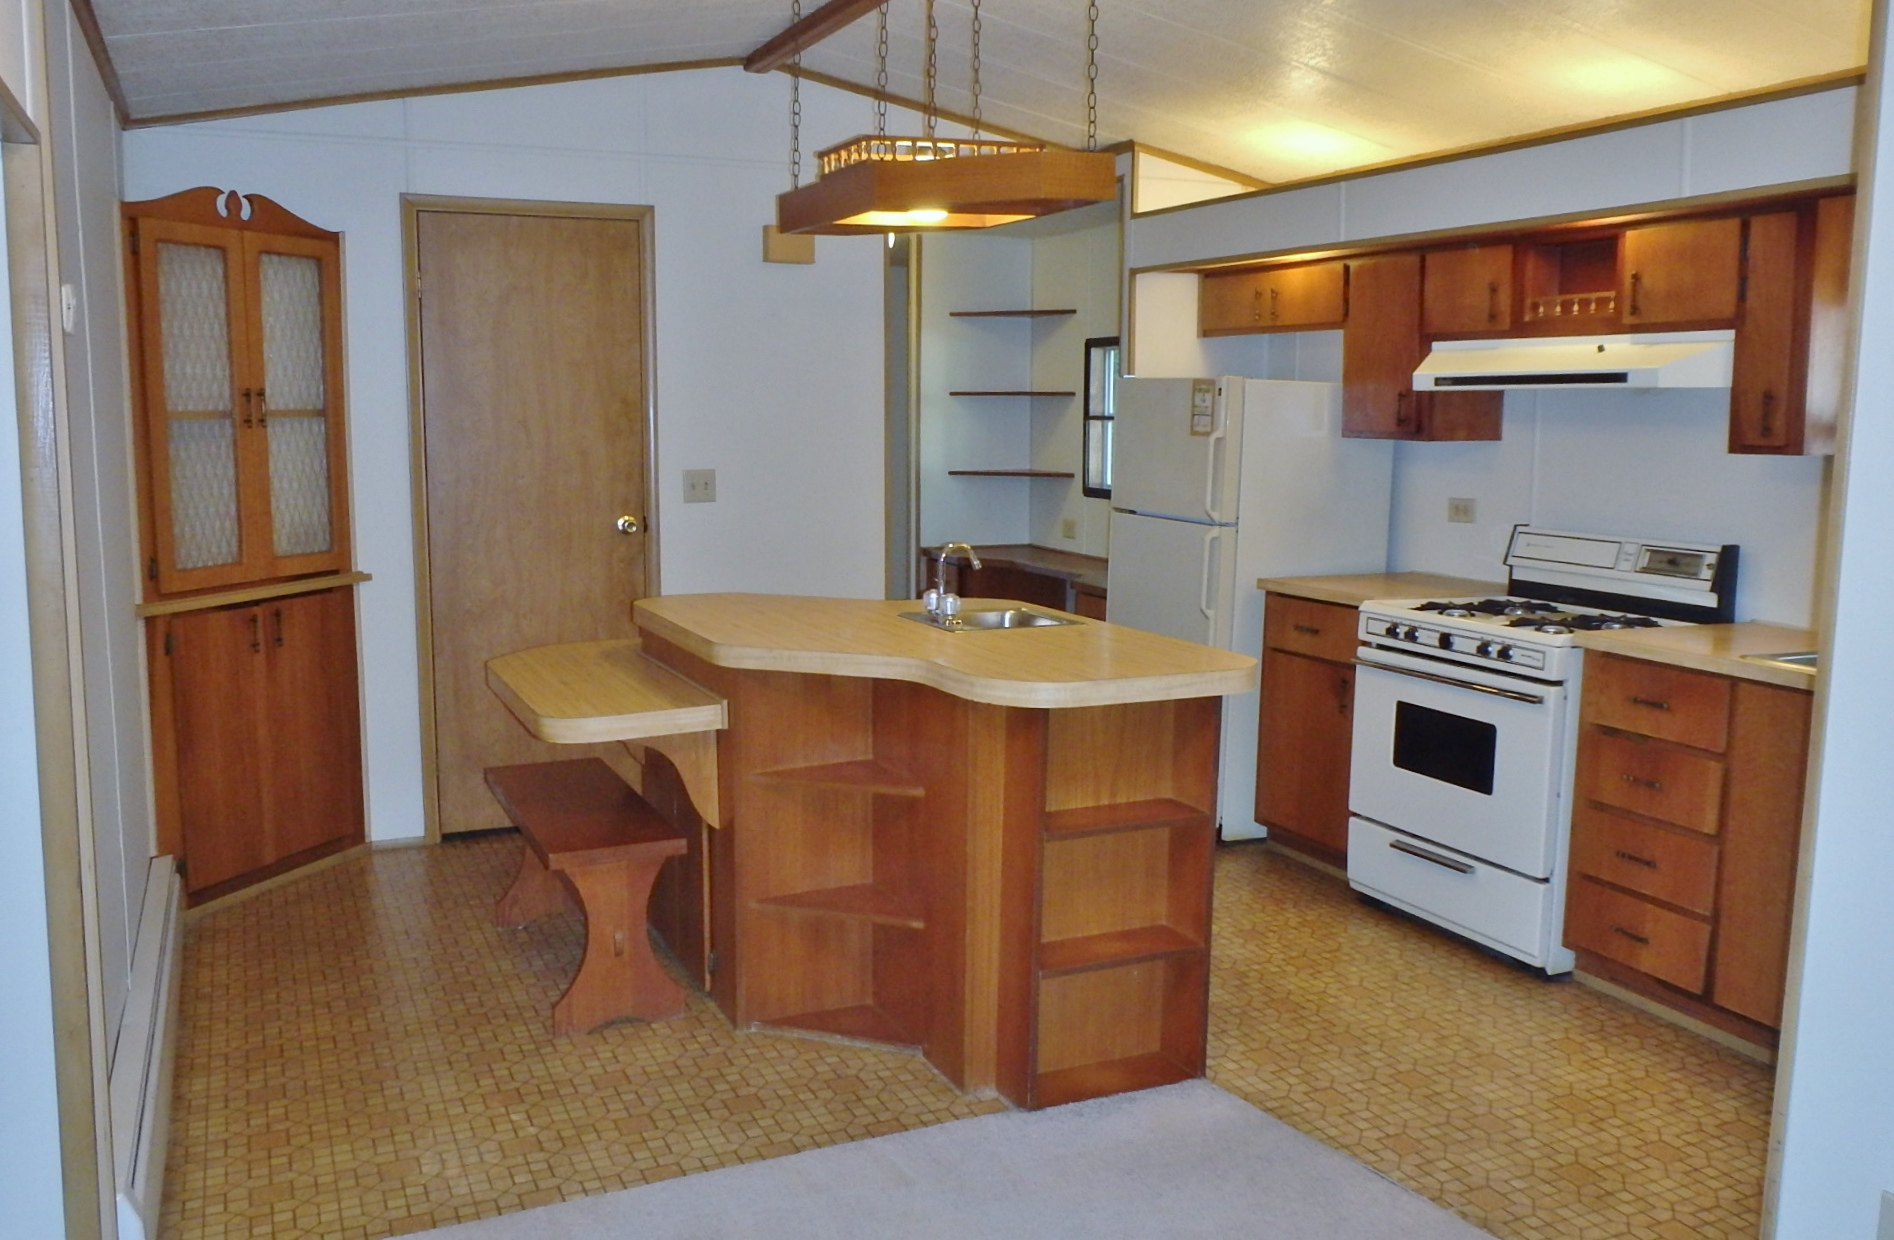 Kitchen photo of the 2 bedroom house for rent at 3119 Carnegie Drive in State College, PA.